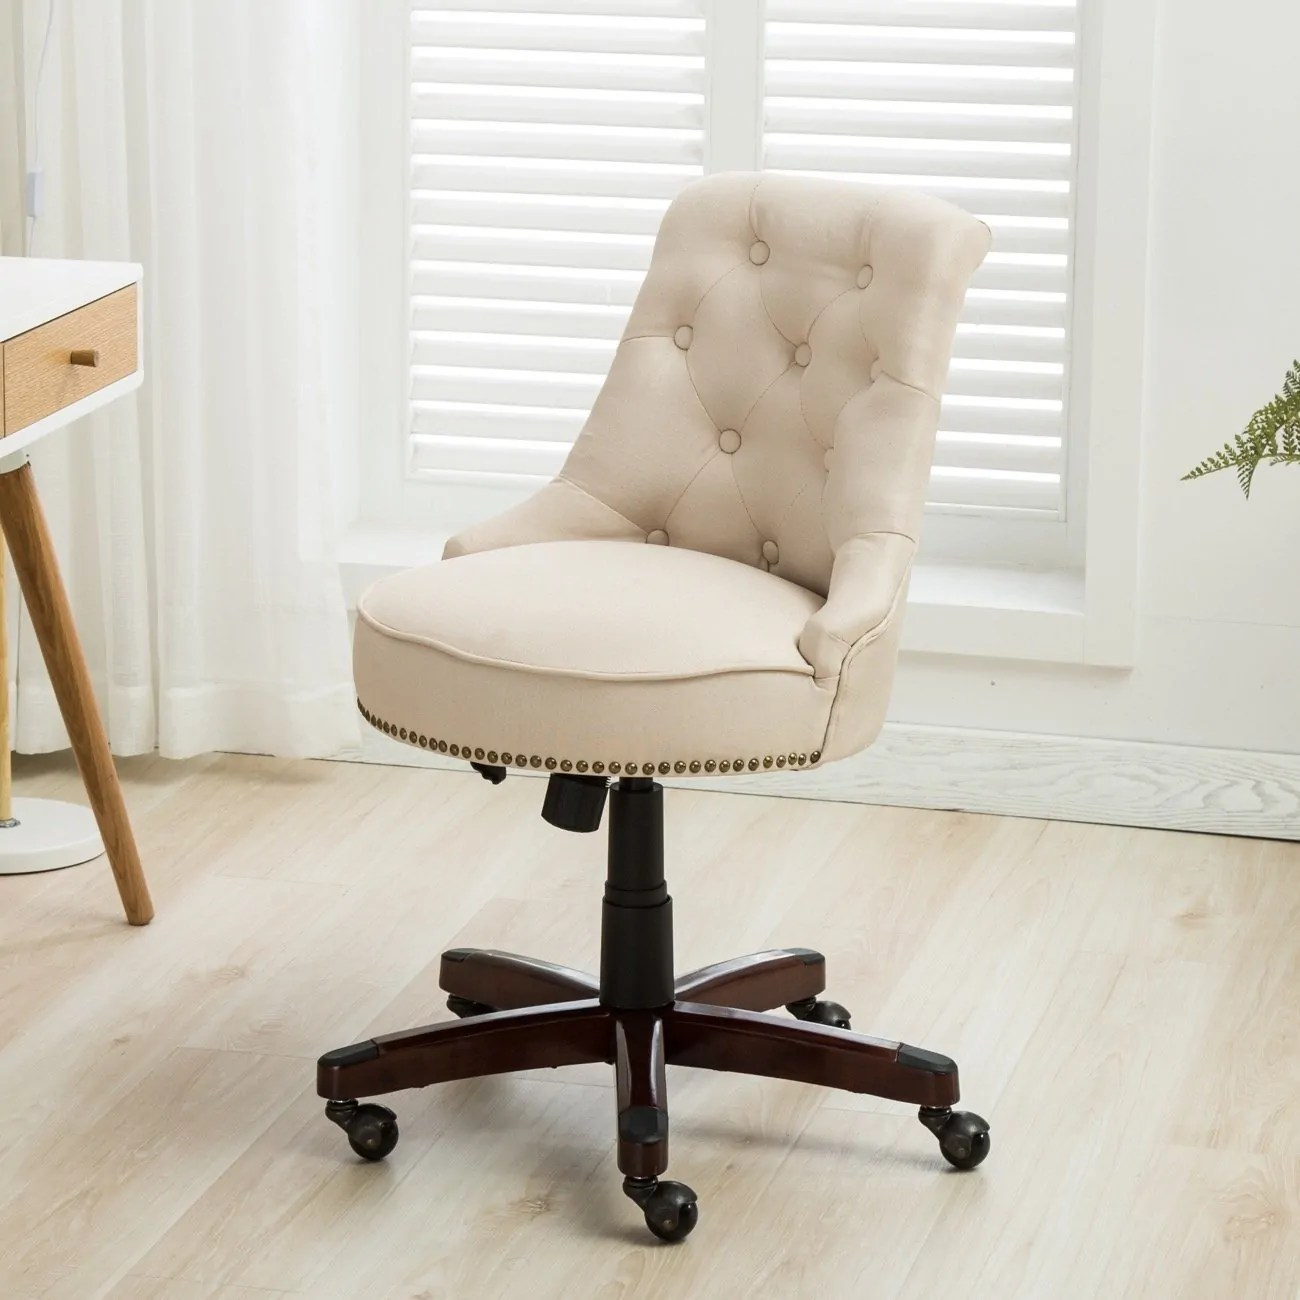 Chairs Comfortable 12 Most Comfortable Office Chairs Under 200 Happily Ever After